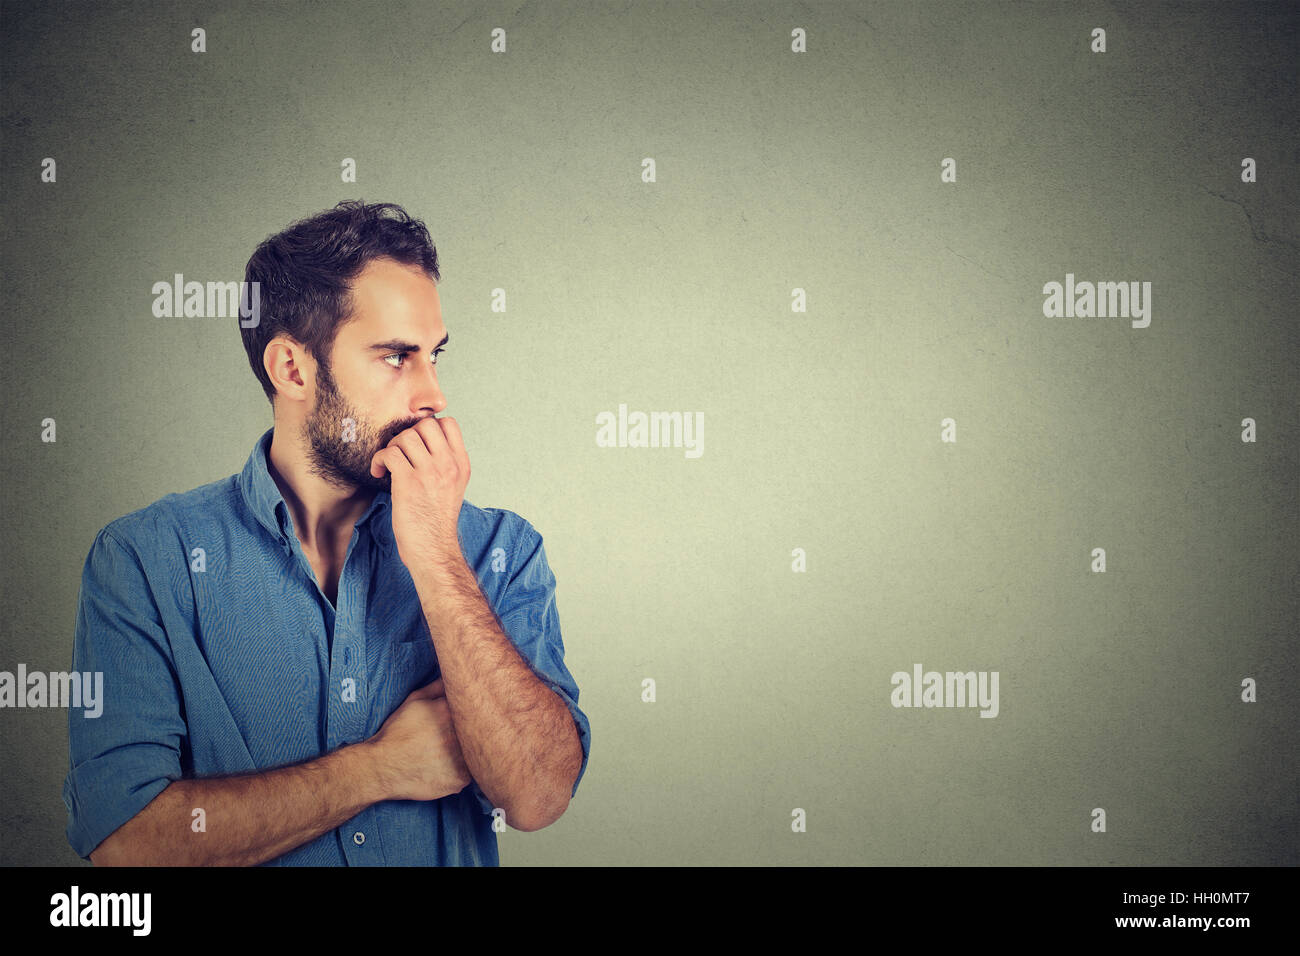 Preoccupied anxious young man - Stock Image